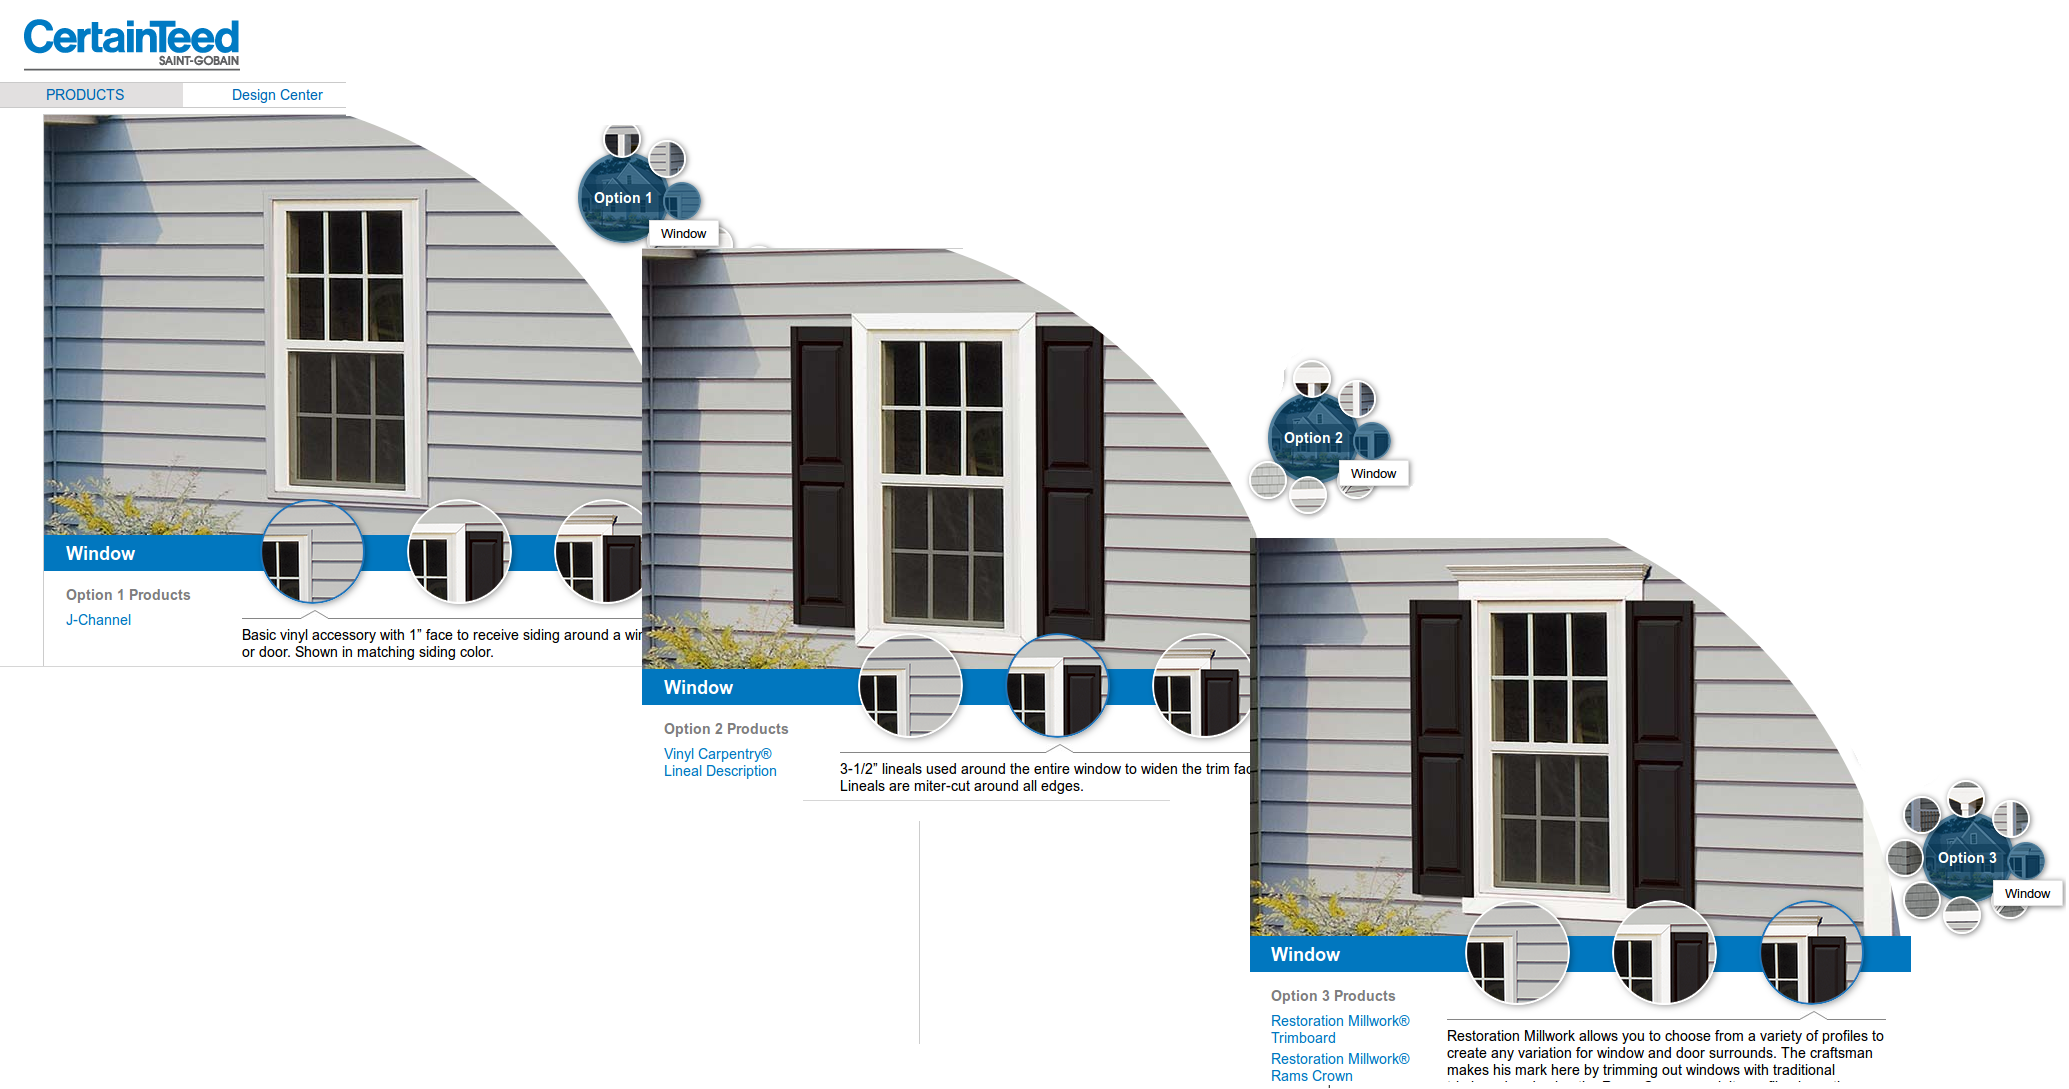 Certainteed Leads You Through The Options Of Their Economical Line Of Home Remodelling Materials To Enhance Your Home S Fascia Pvc Trim Millwork Certainteed